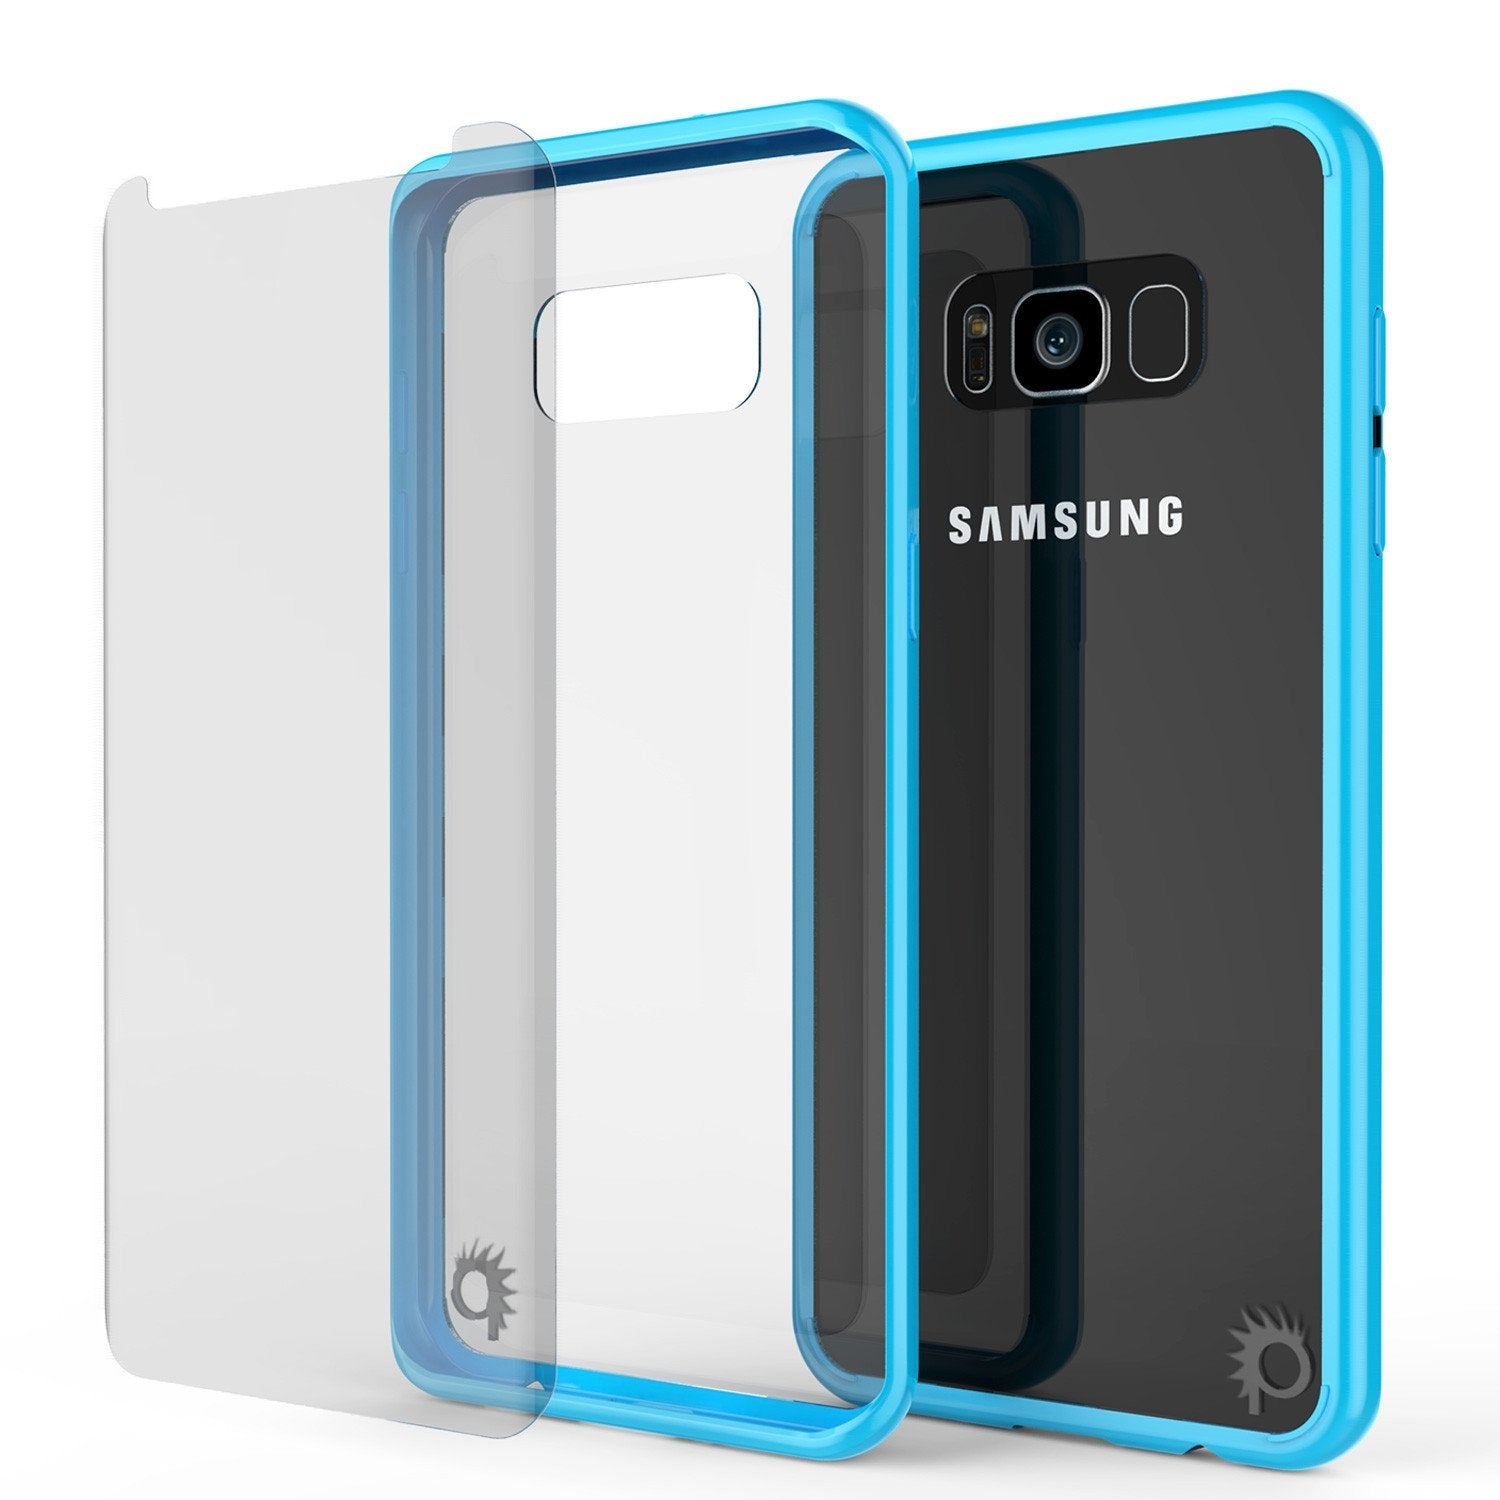 S8 Case Punkcase® LUCID 2.0 Light Blue Series w/ PUNK SHIELD Screen Protector | Ultra Fit - PunkCase NZ